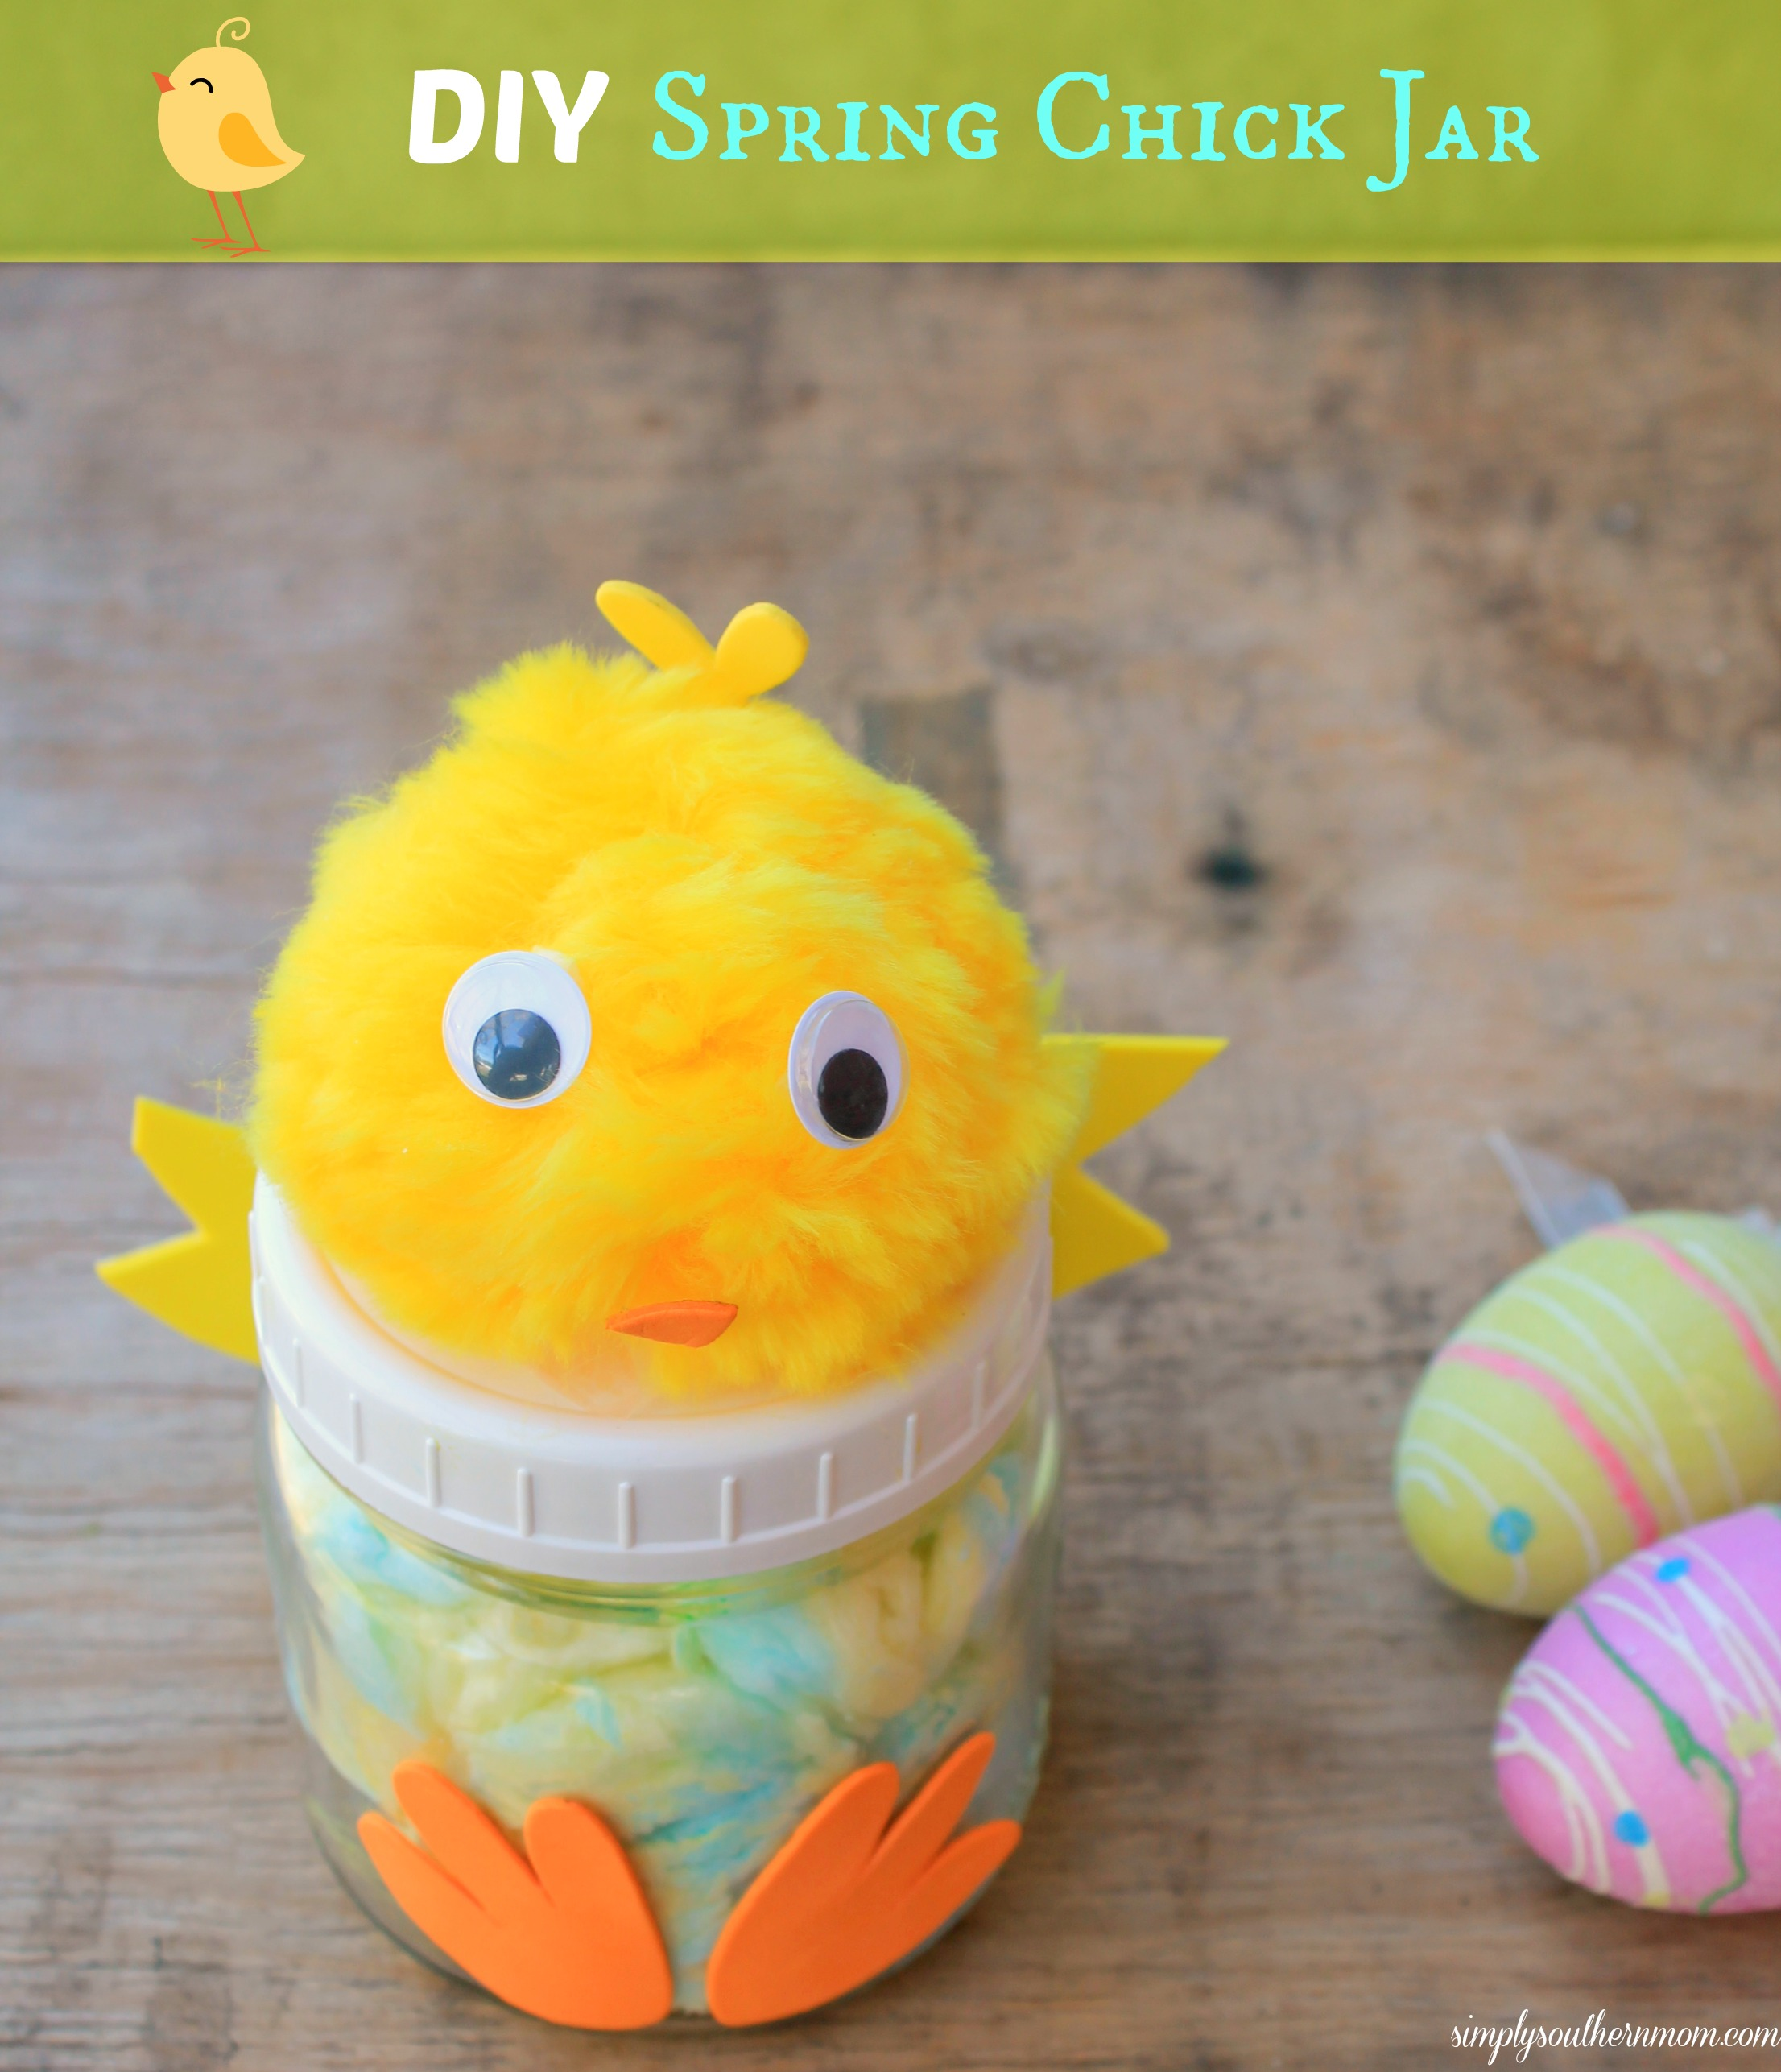 DIY Spring Chick Jar